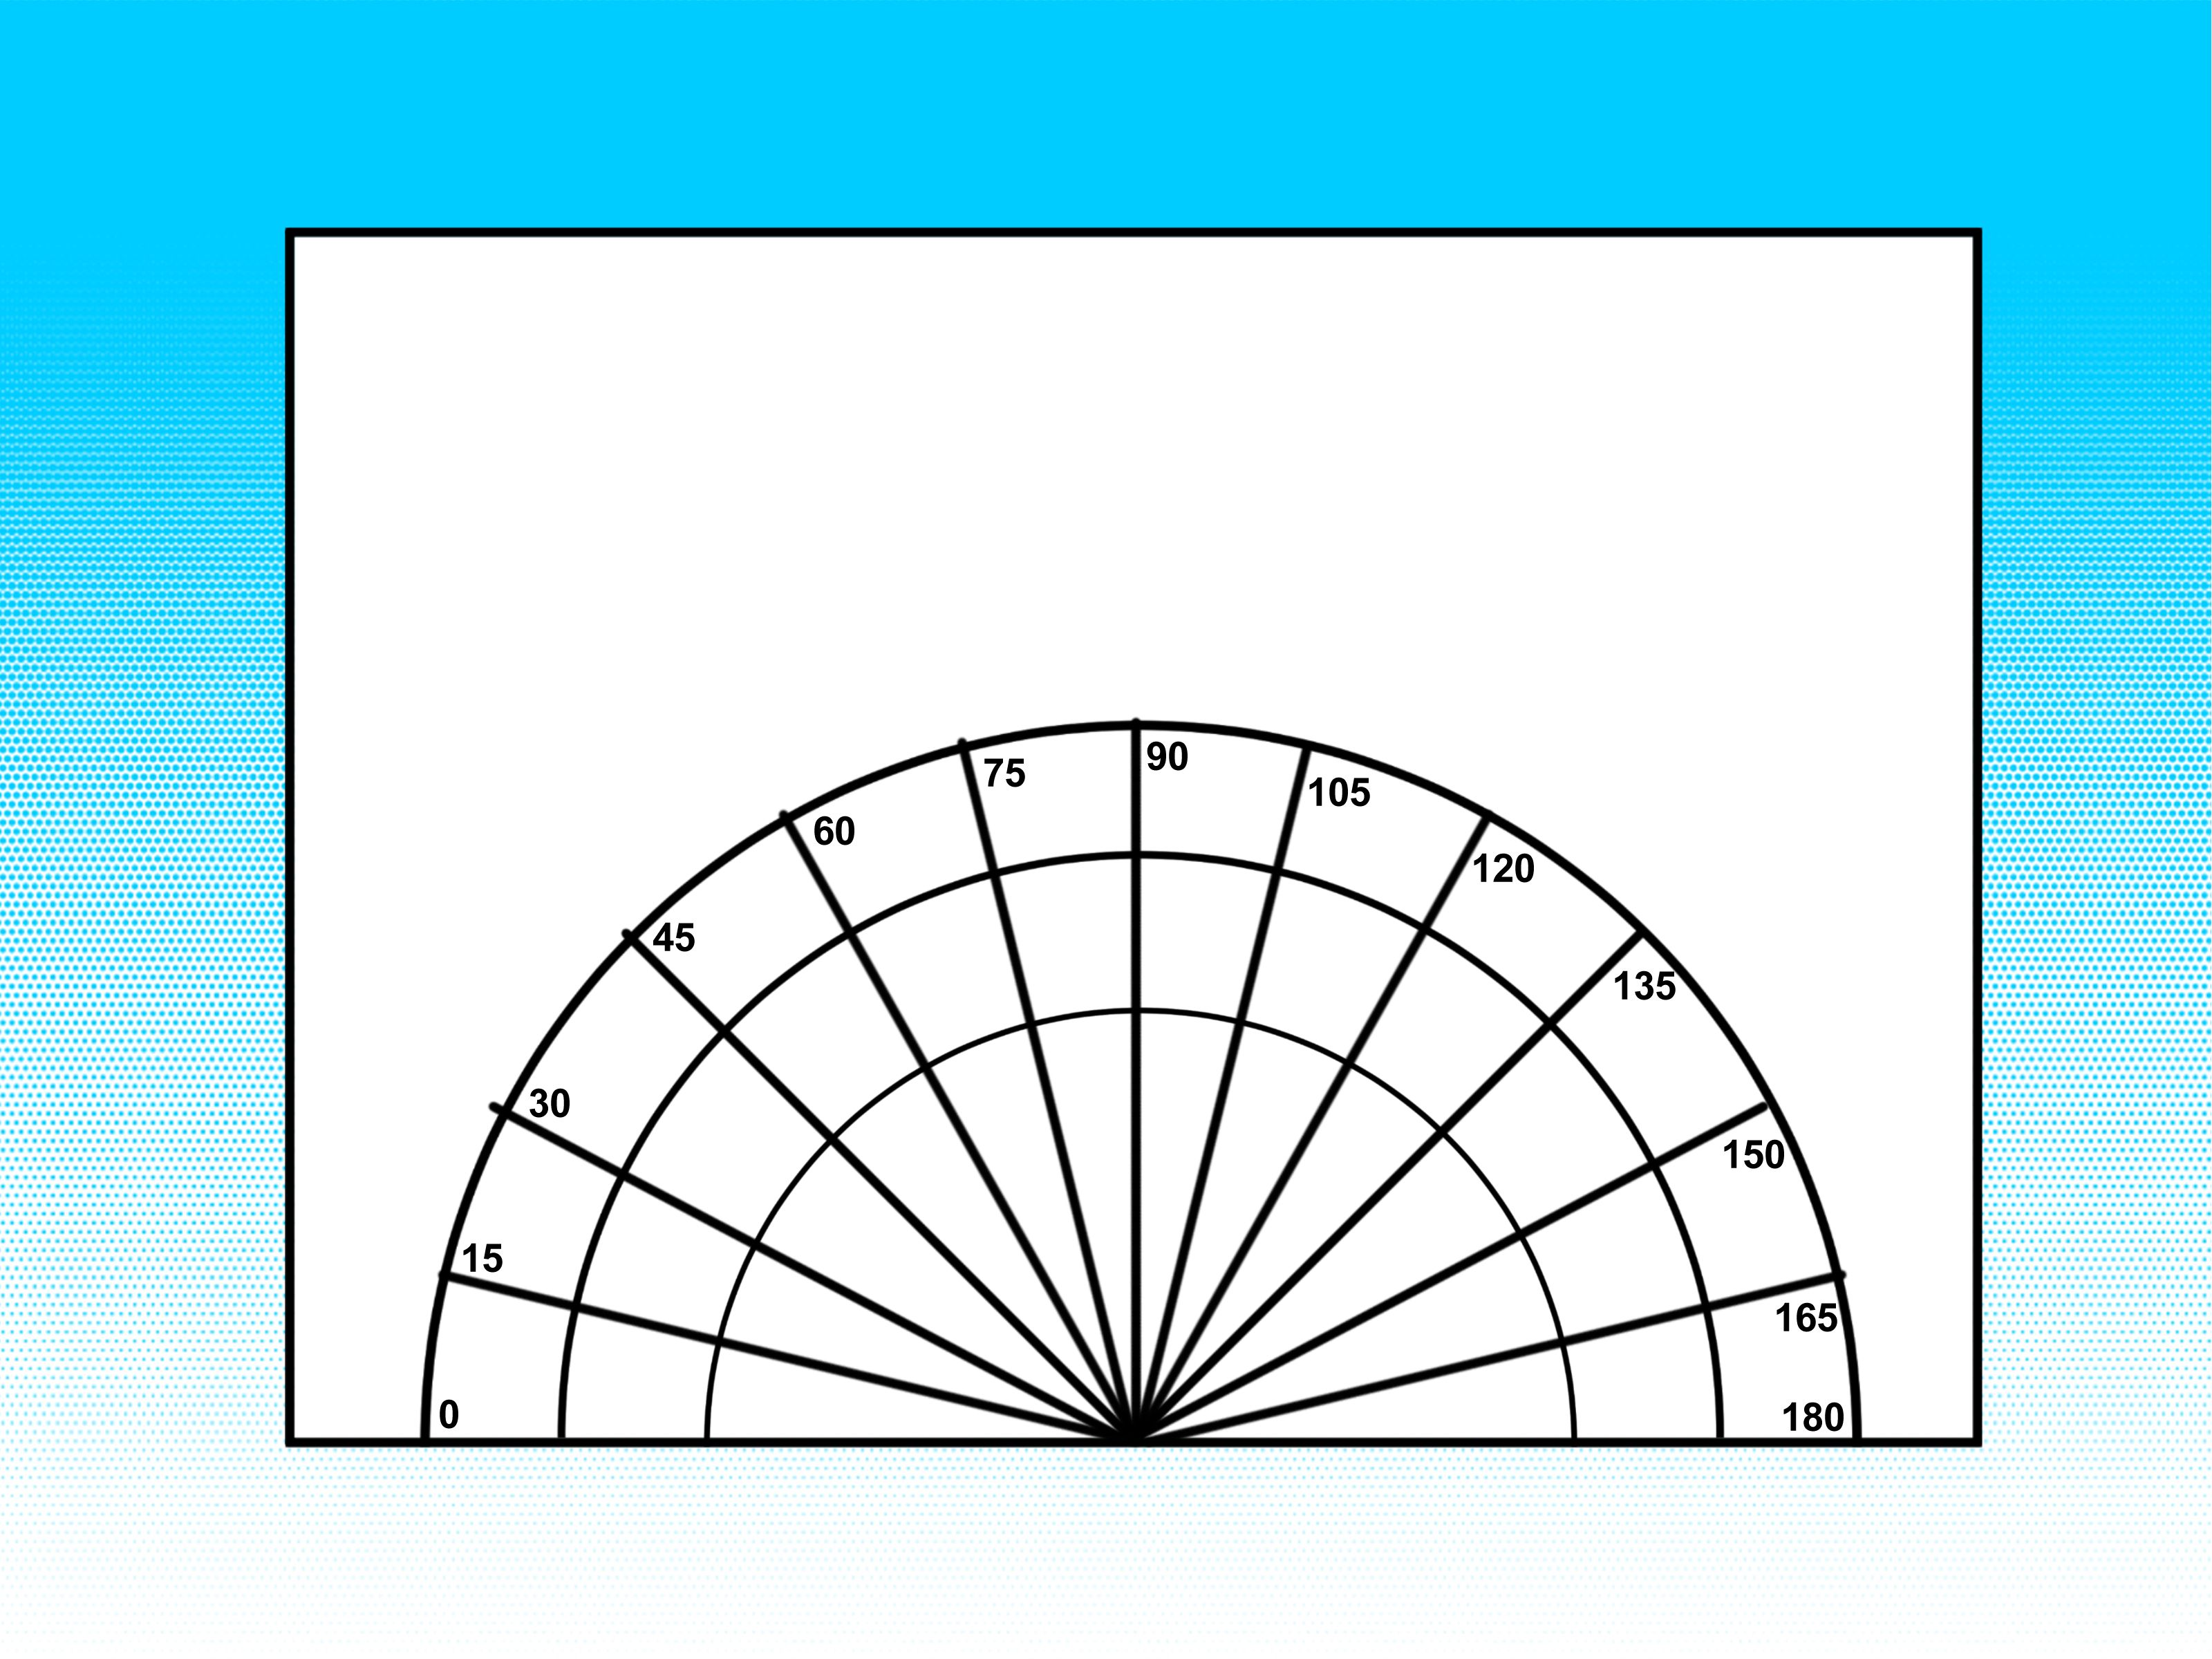 worksheet A Protractor how to make your own paper protractors step by guide with a lot of